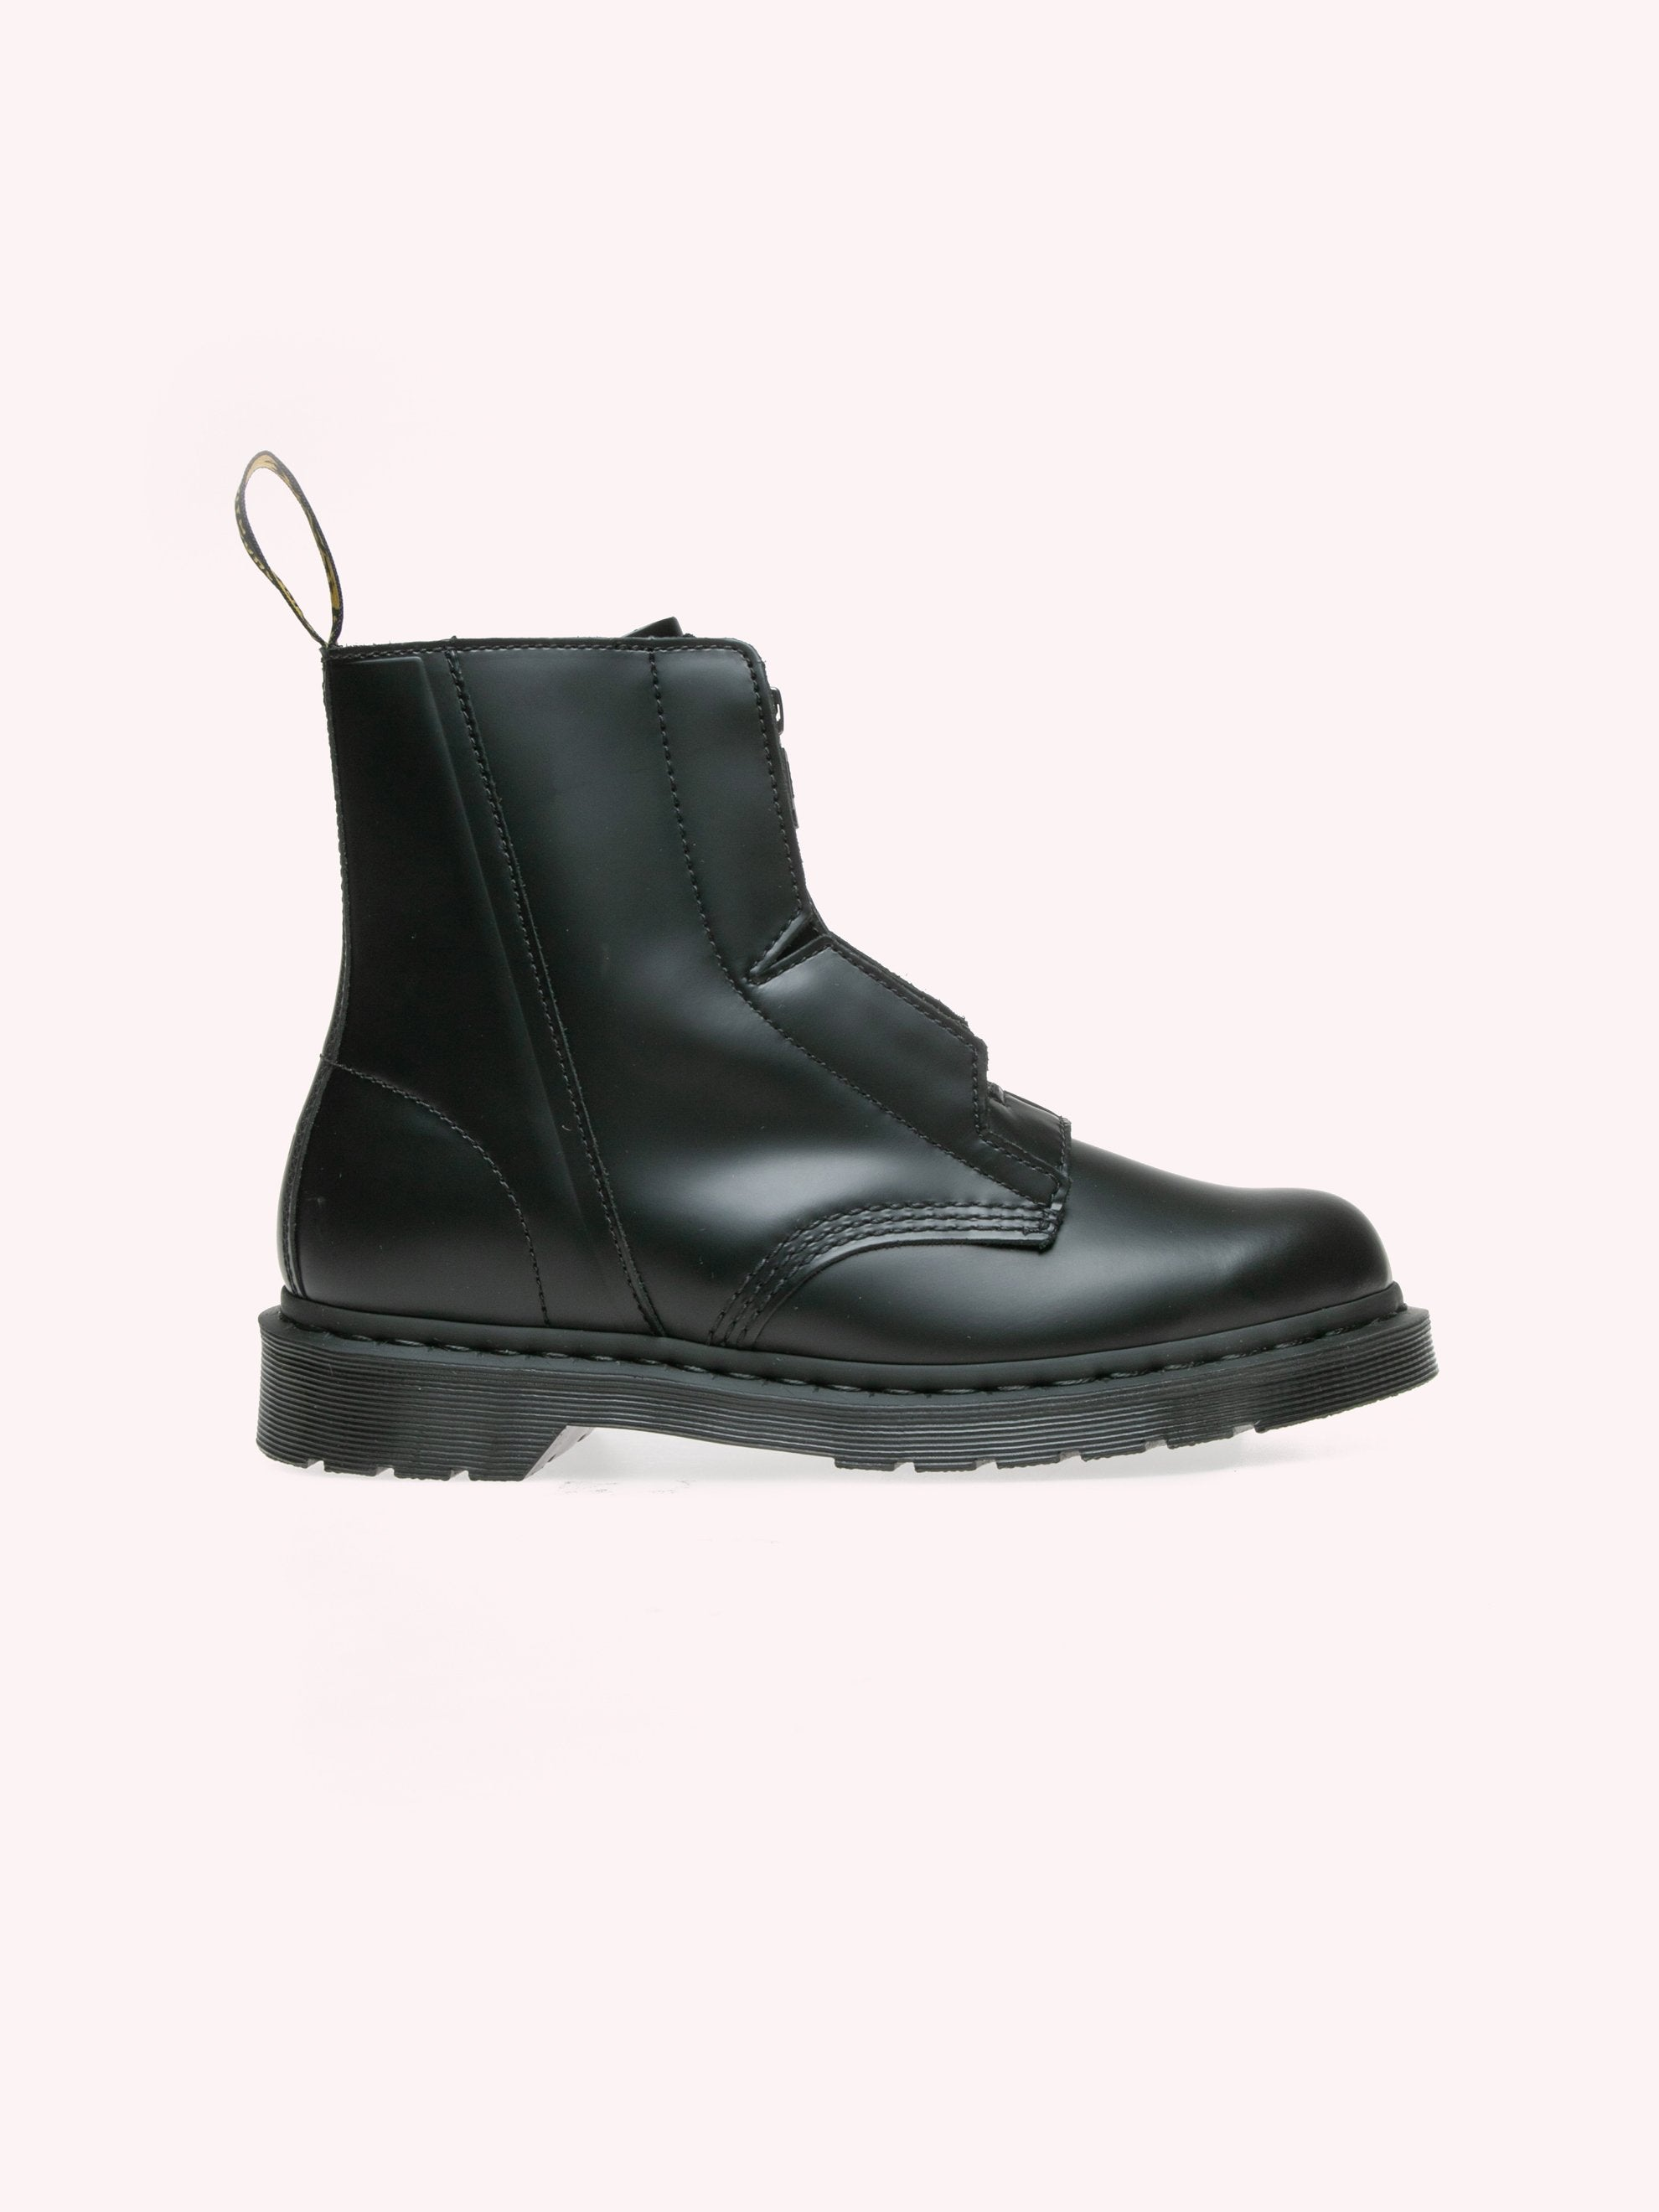 ACW X Dr Martens Zip Up Leather Boots